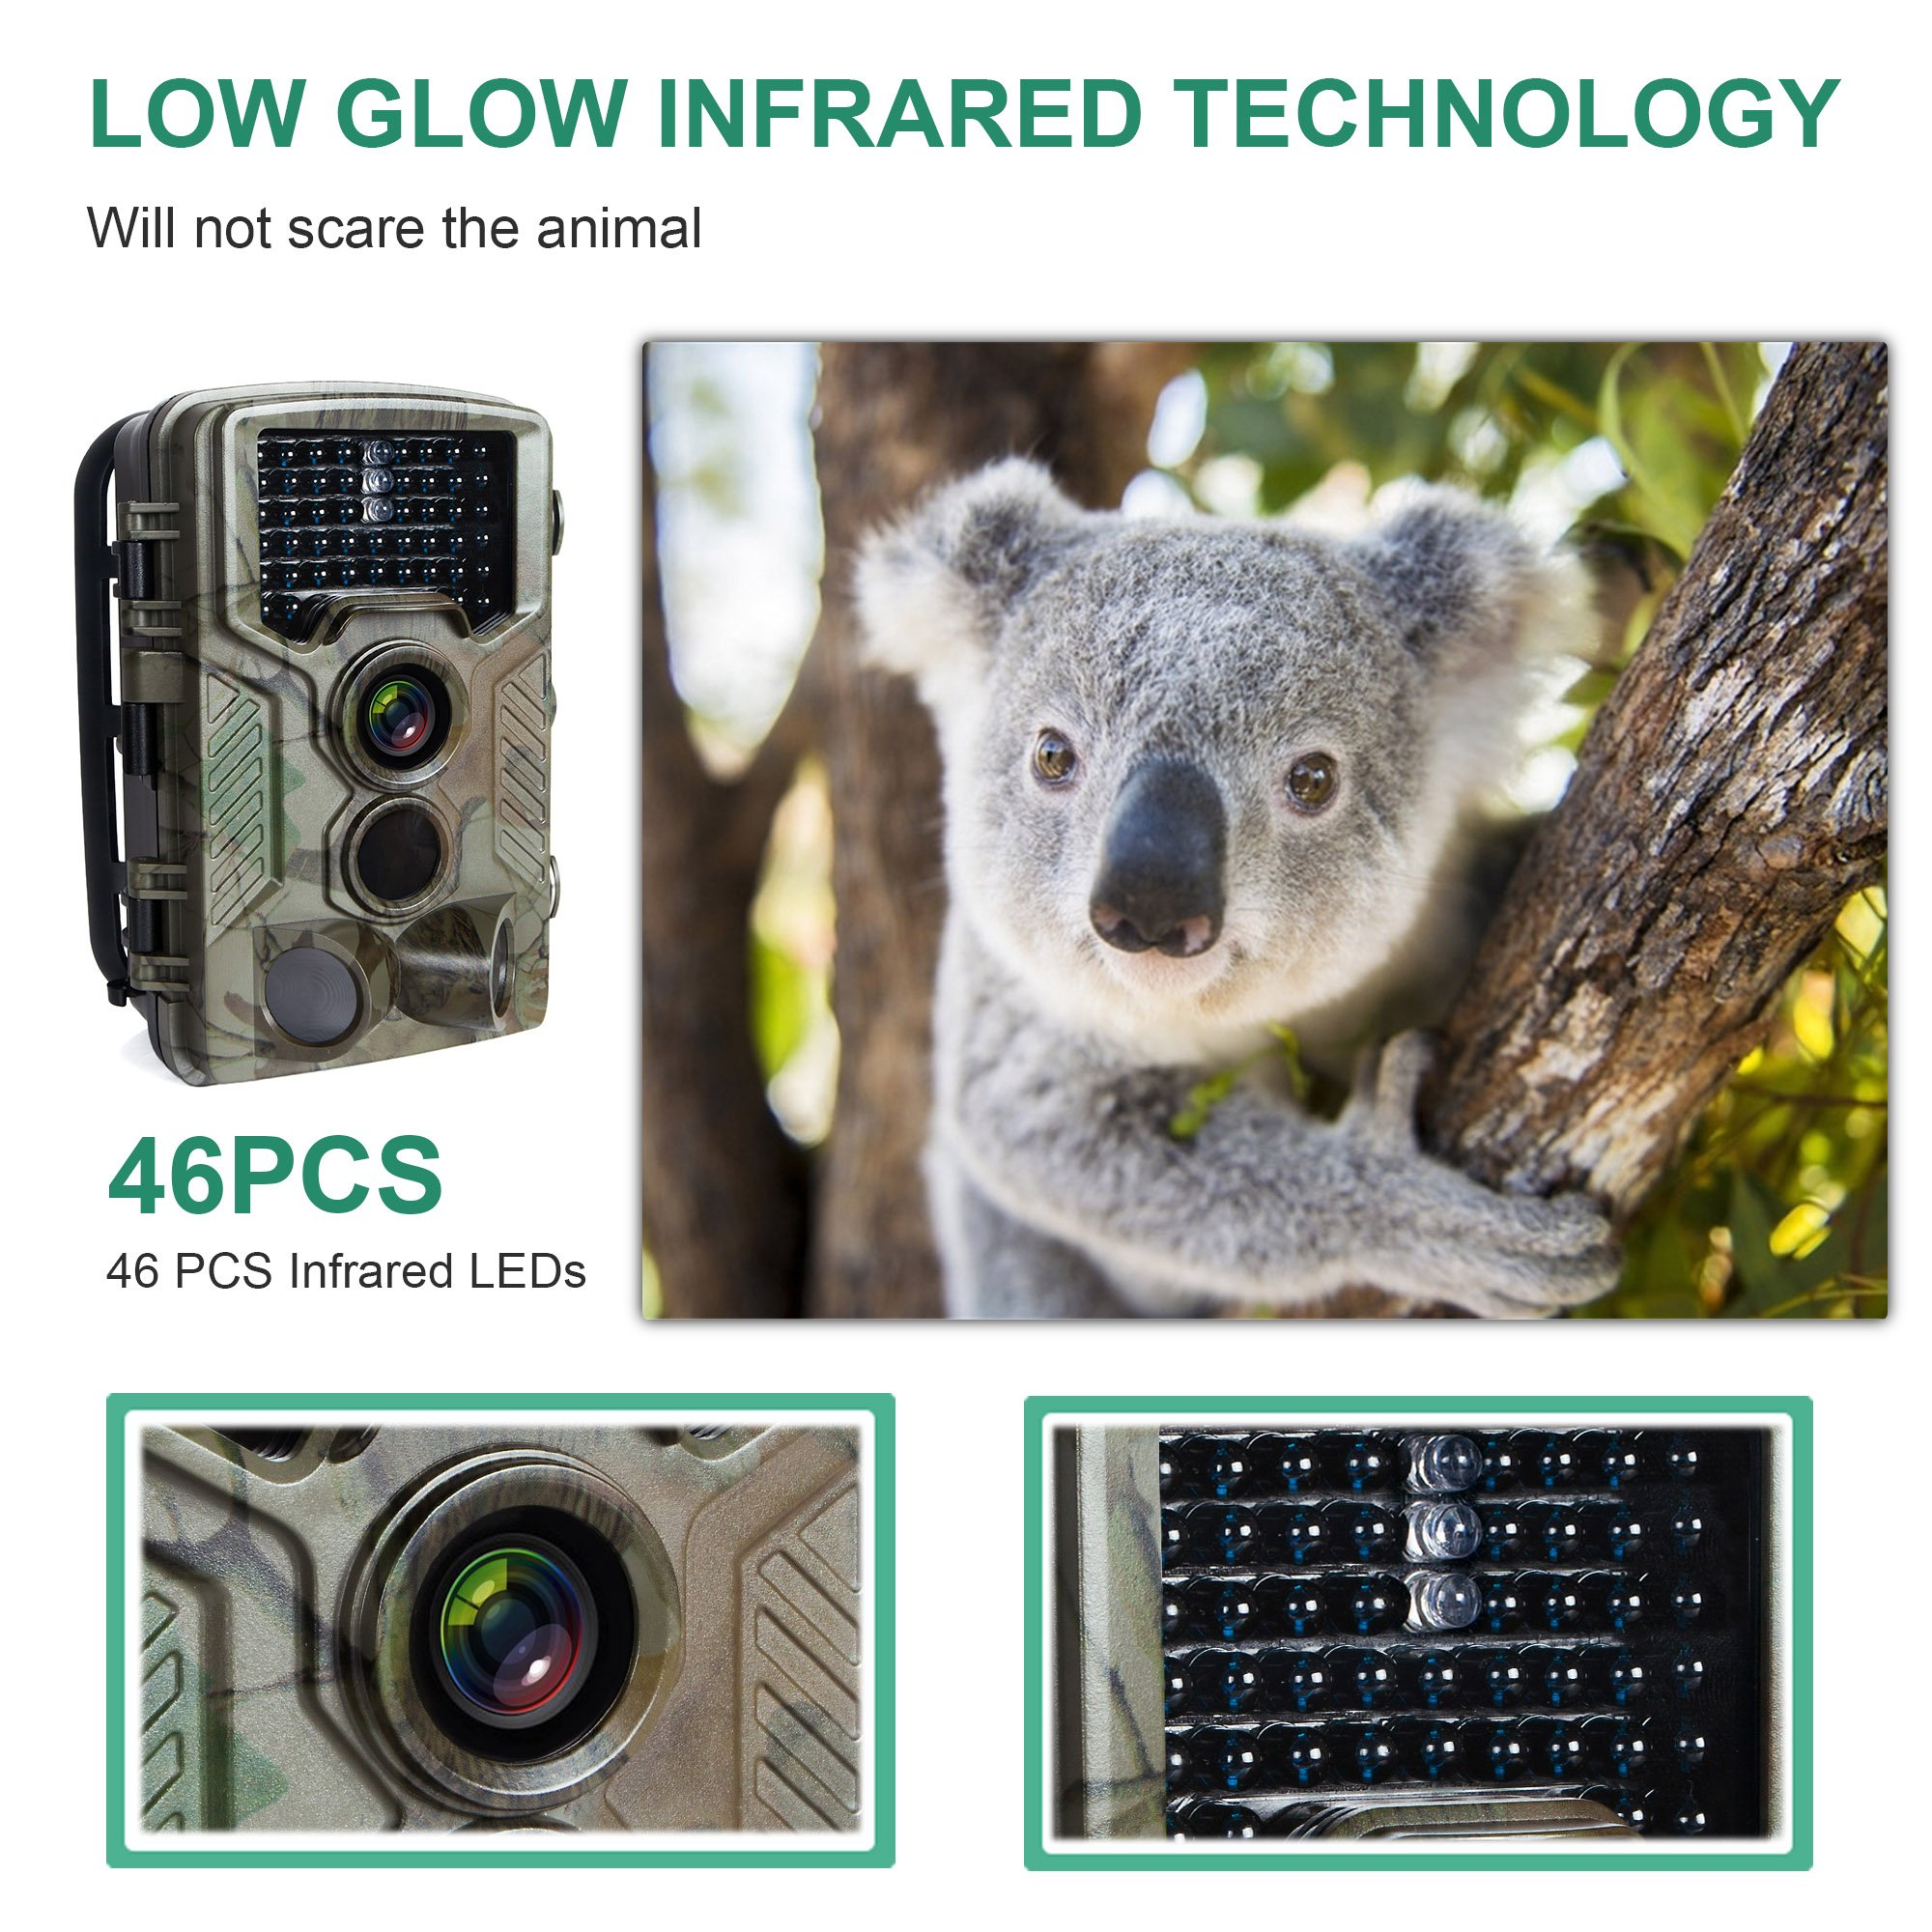 FLAGPOWER Hunting Trail Camera, 16MP 1080P 0.2s Trigger Time Wildlife Game Camera with 2.4'' LCD 850nm Upgrading IR LEDs Night Vision up to 75ft/2.3m IP56 Spray Water Protected Design by FLAGPOWER (Image #5)